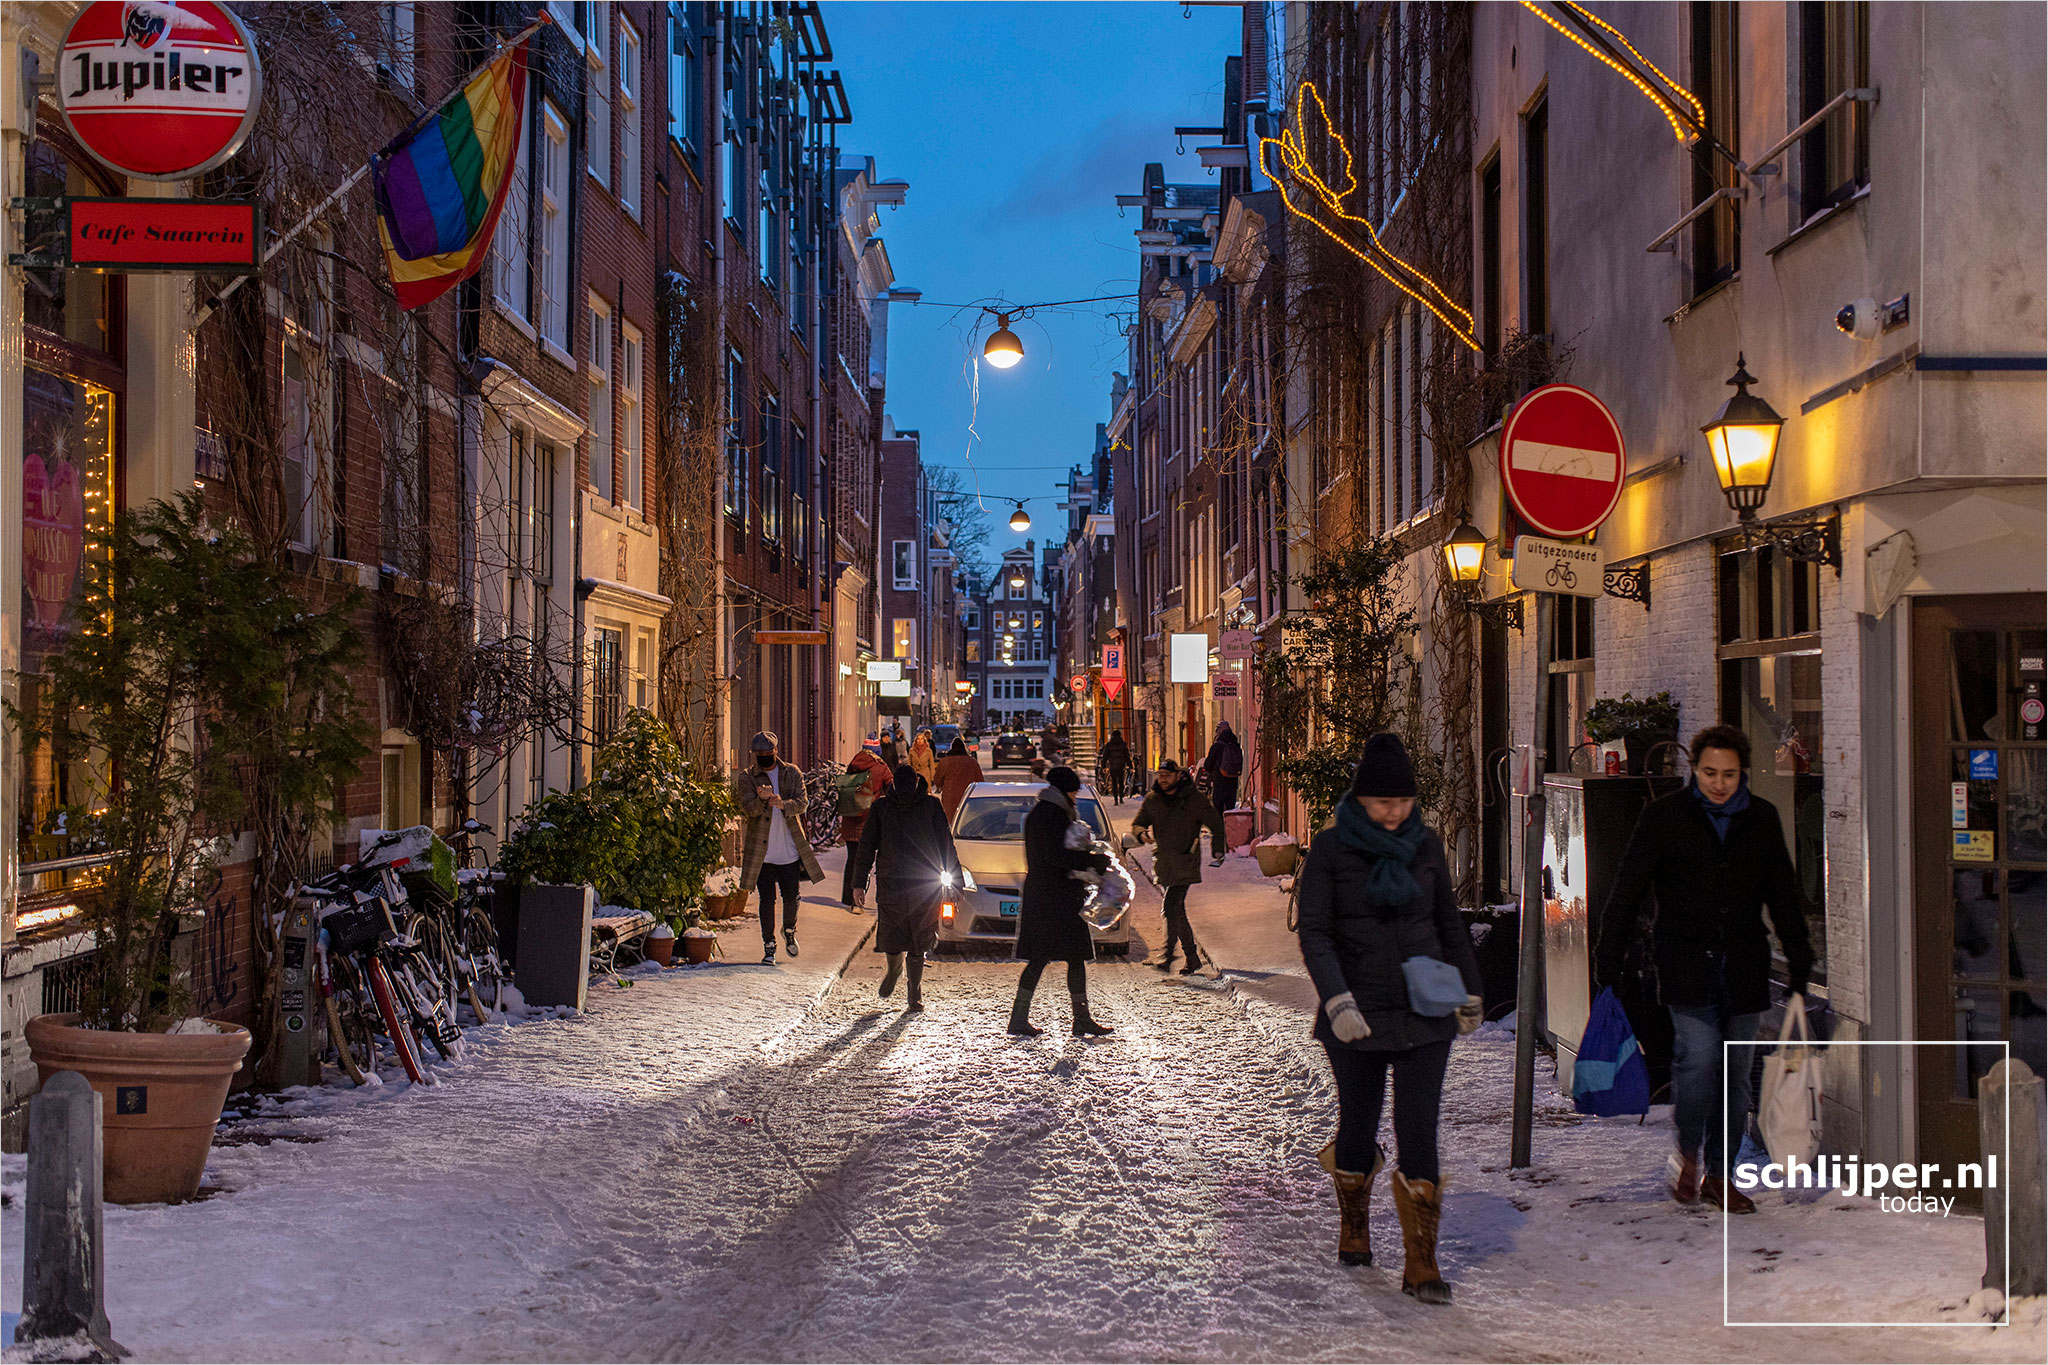 The Netherlands, Amsterdam, 9 februari 2021